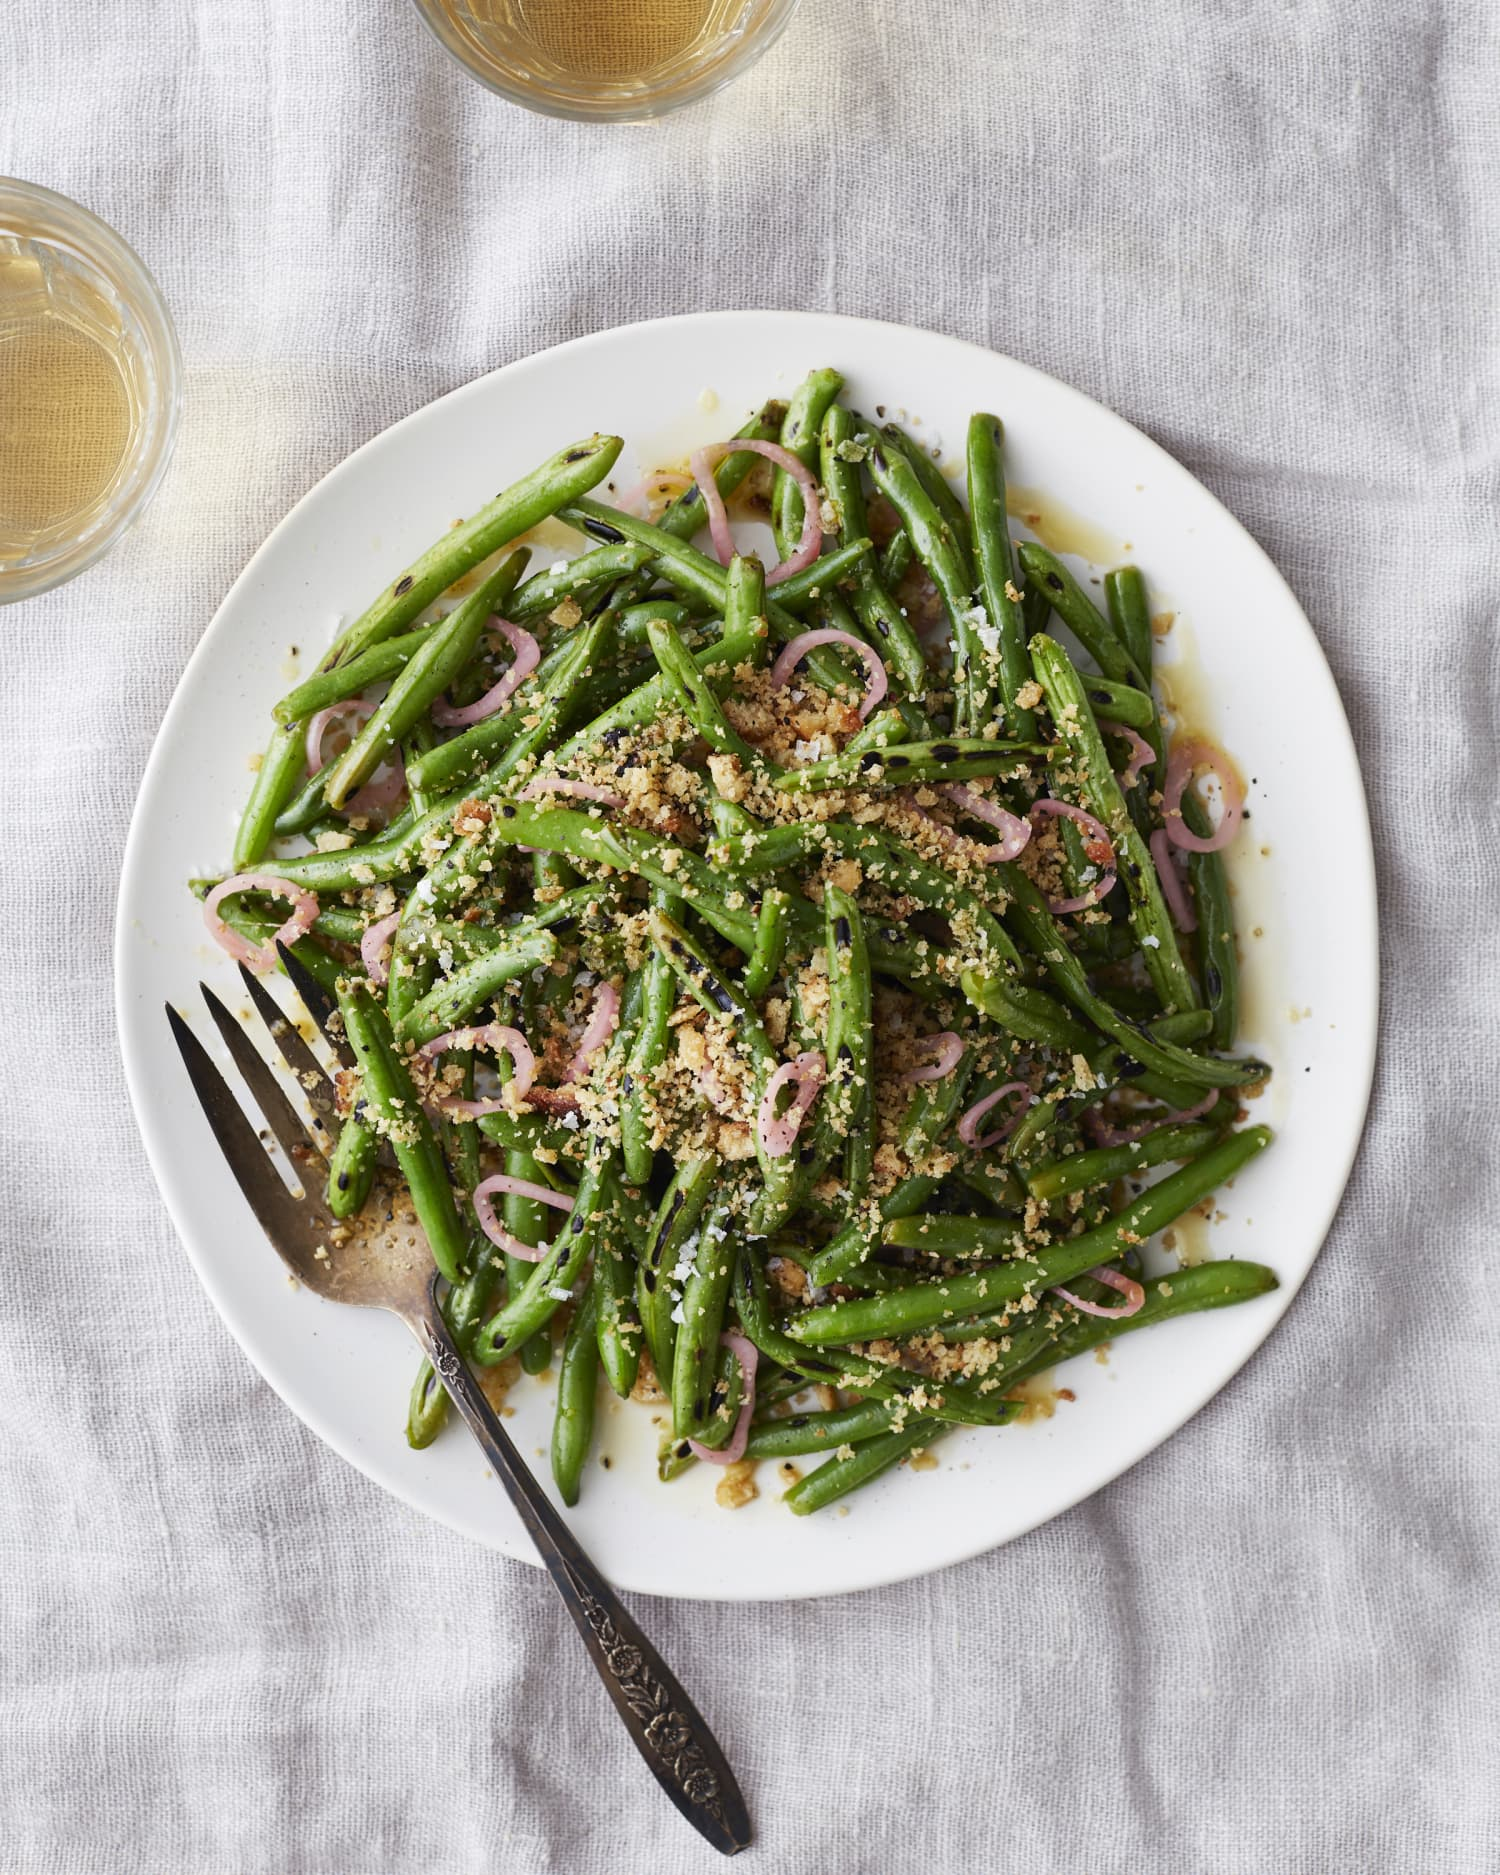 Our New Favorite Green Bean Recipe Is Fast, Fresh, and Seriously Good